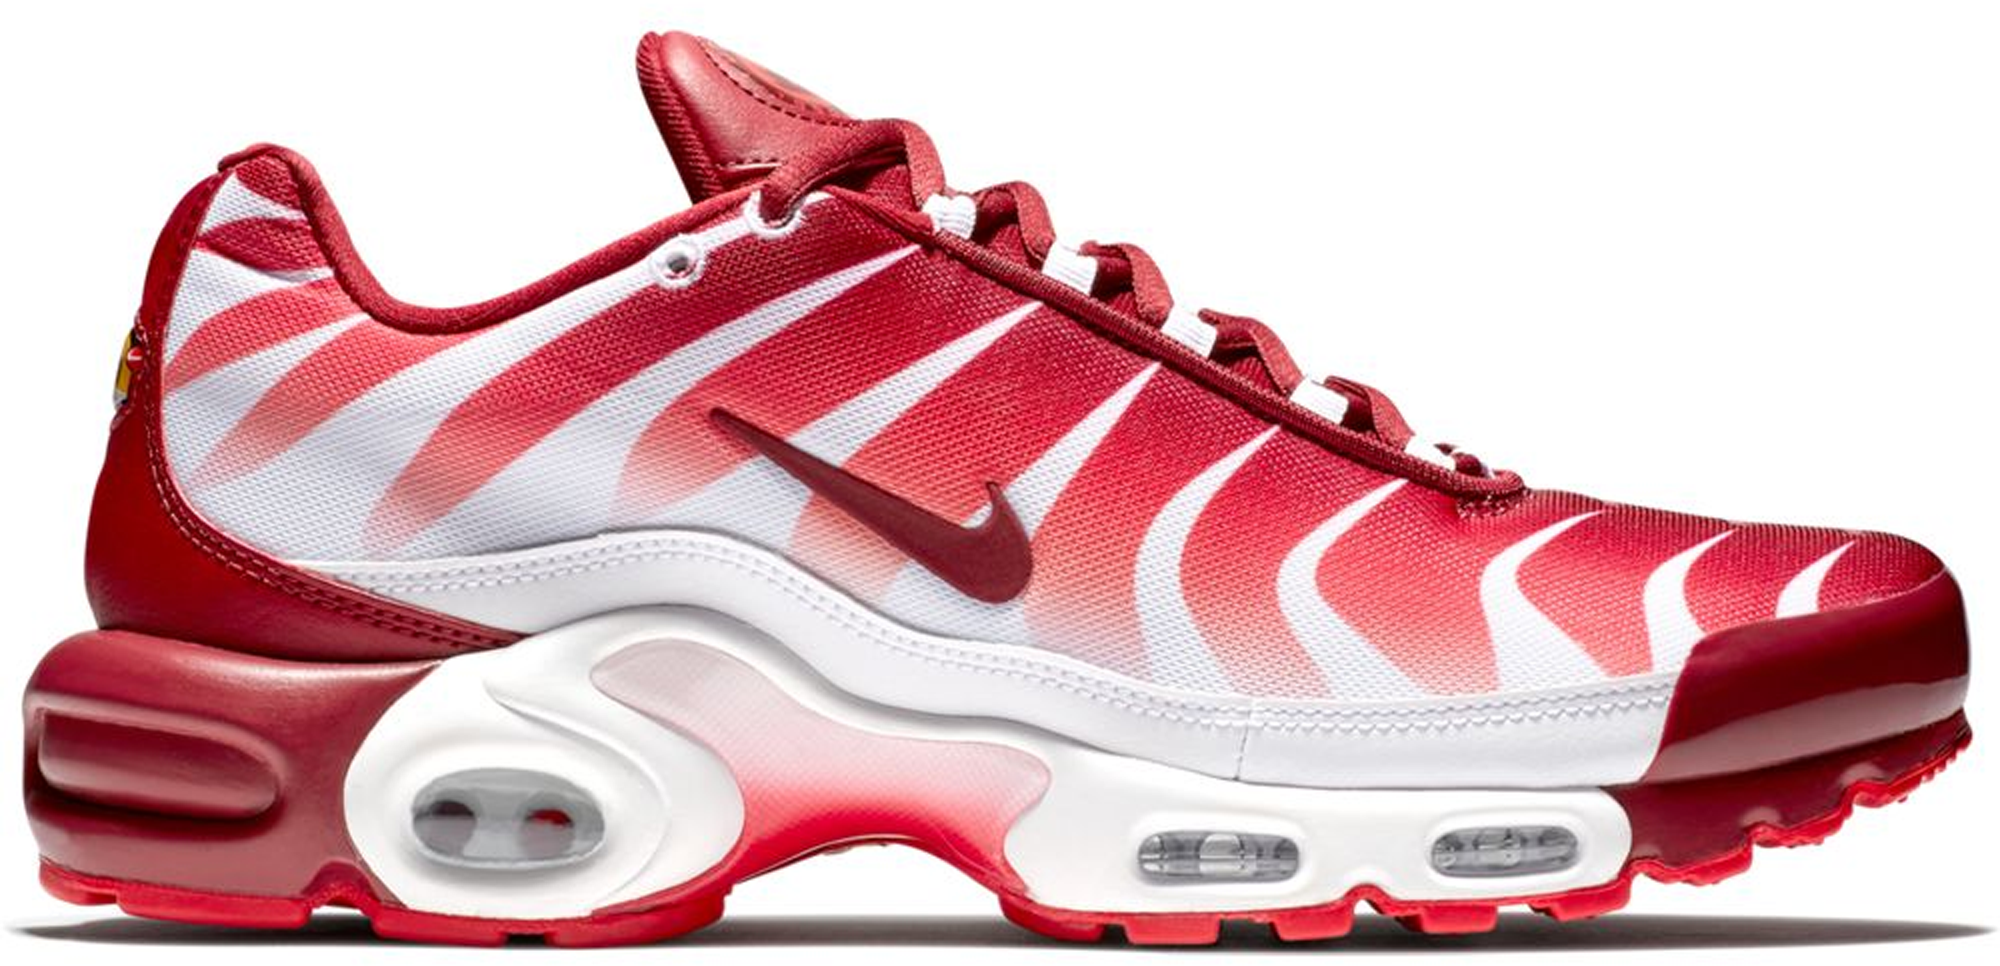 Air Max Plus After the Bite